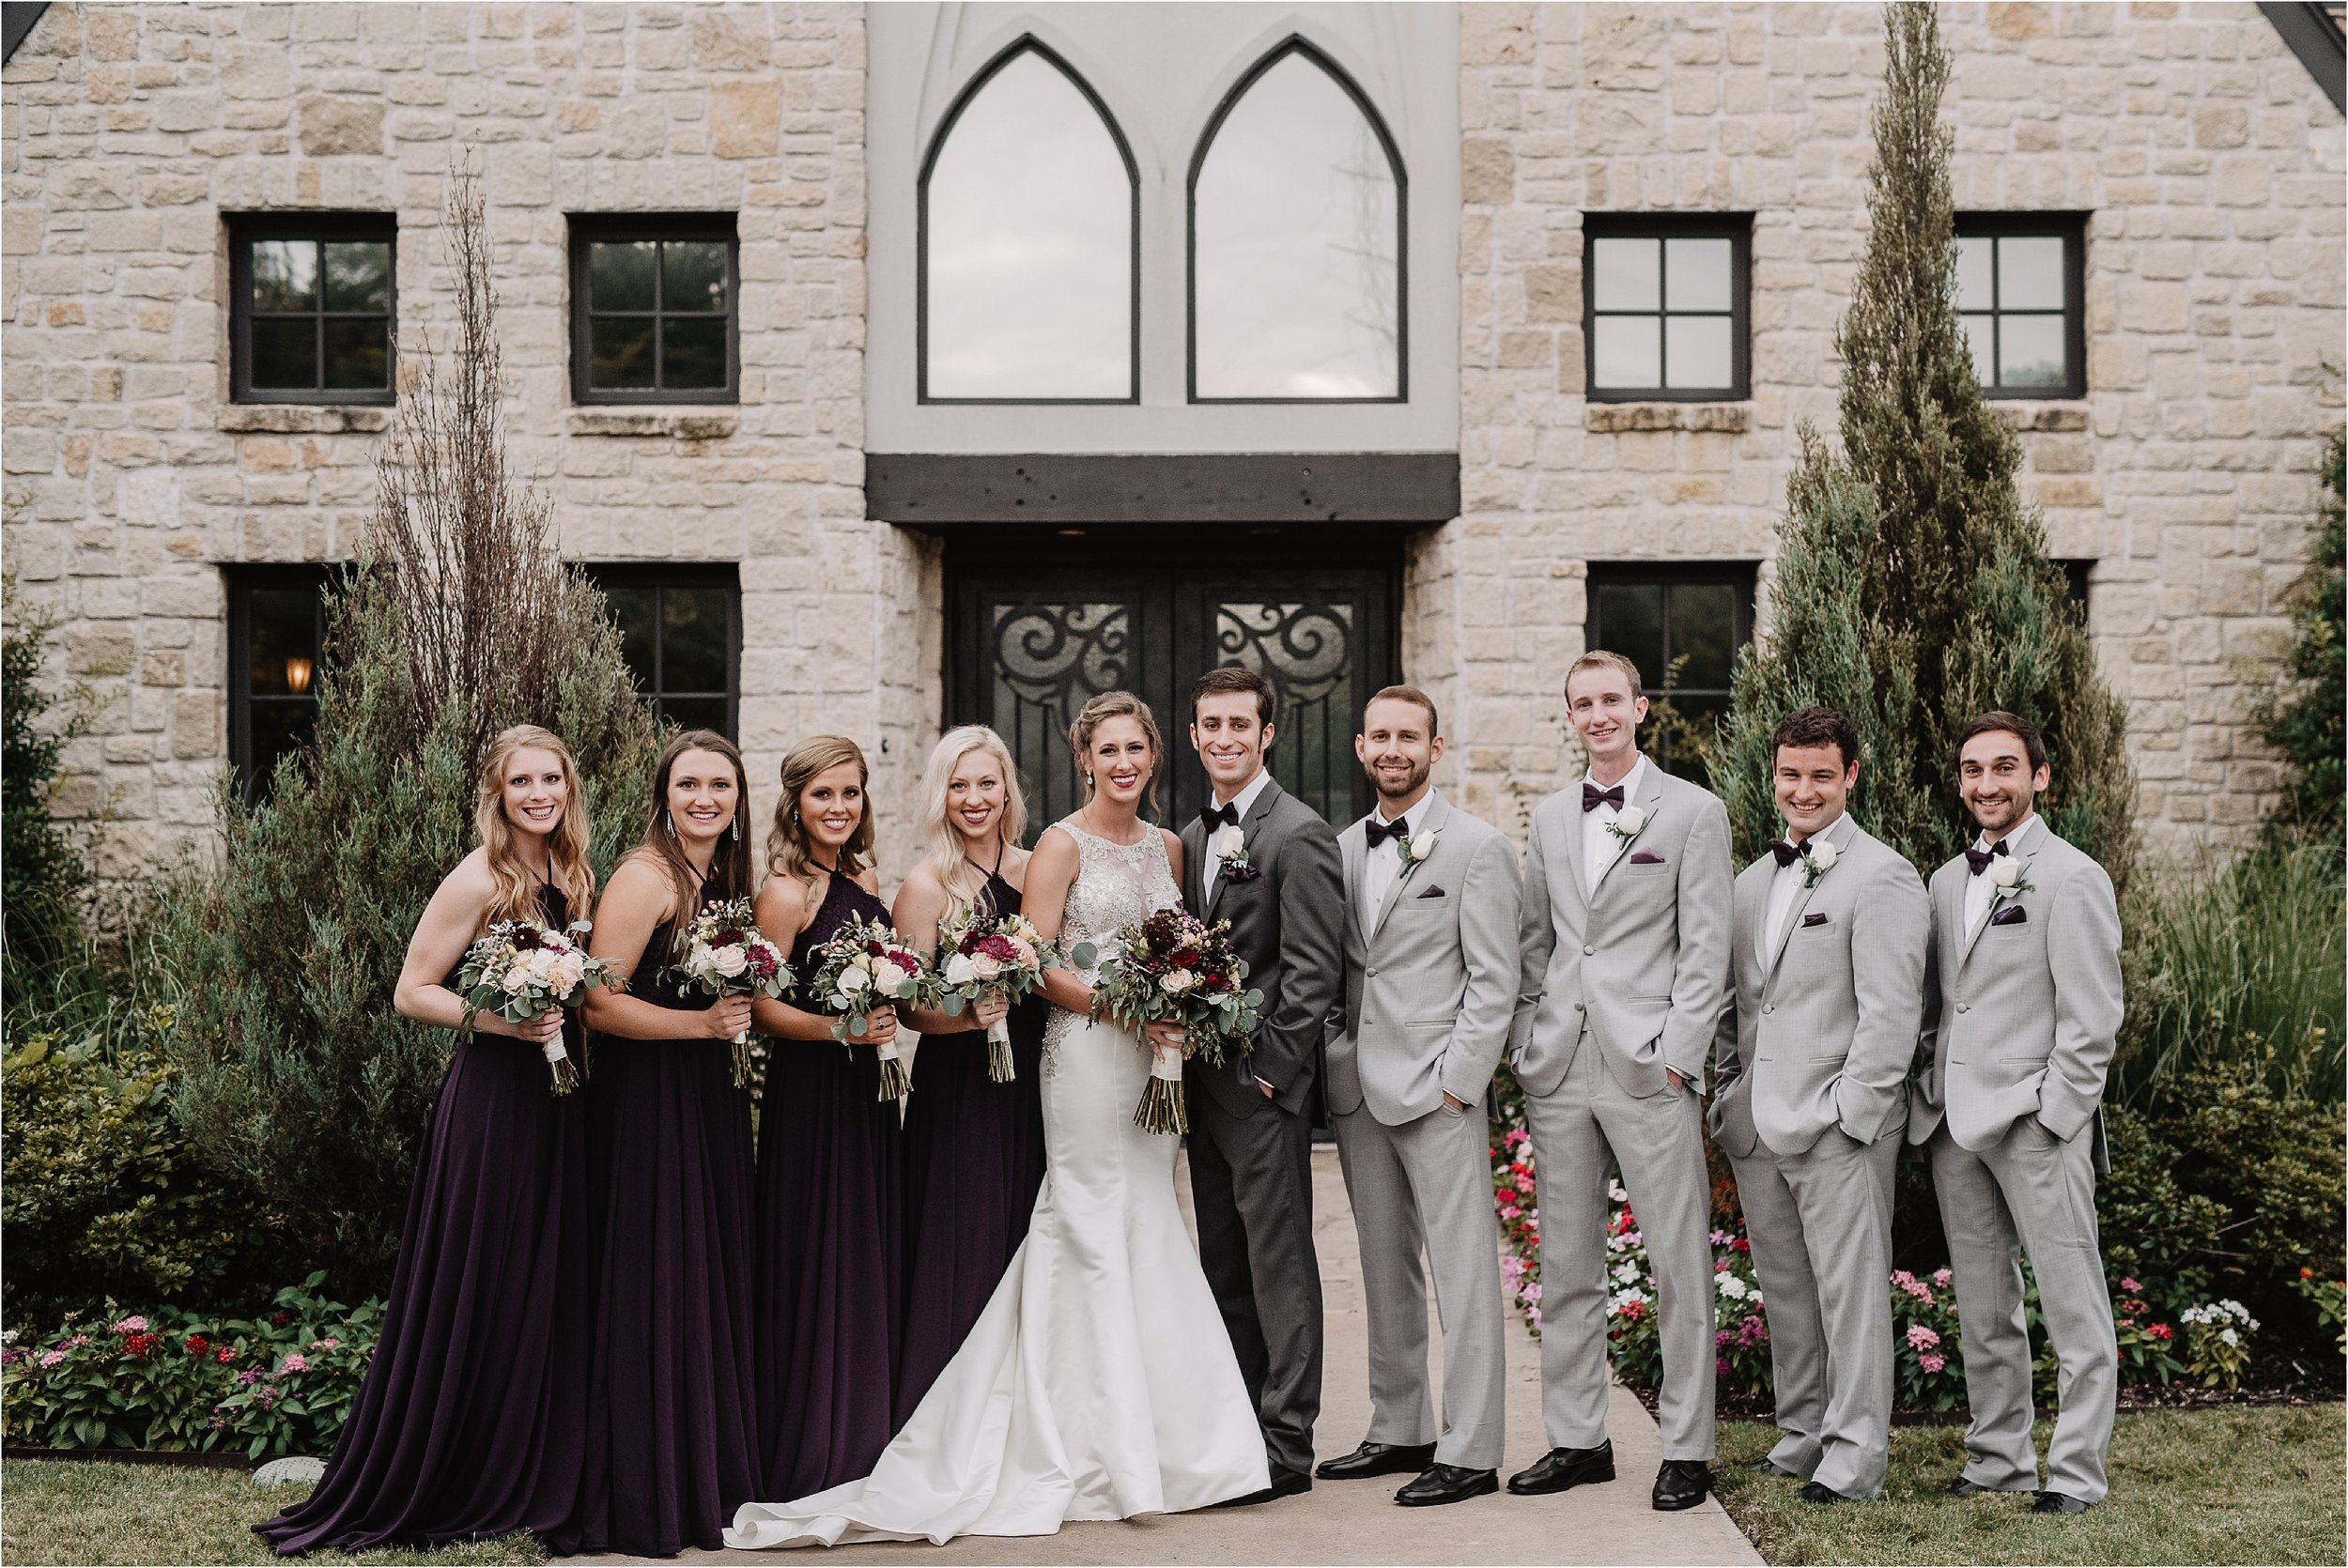 Vesica Piscis Chapel, Oklahoma Wedding, Regan and Brock Hime-25.jpg